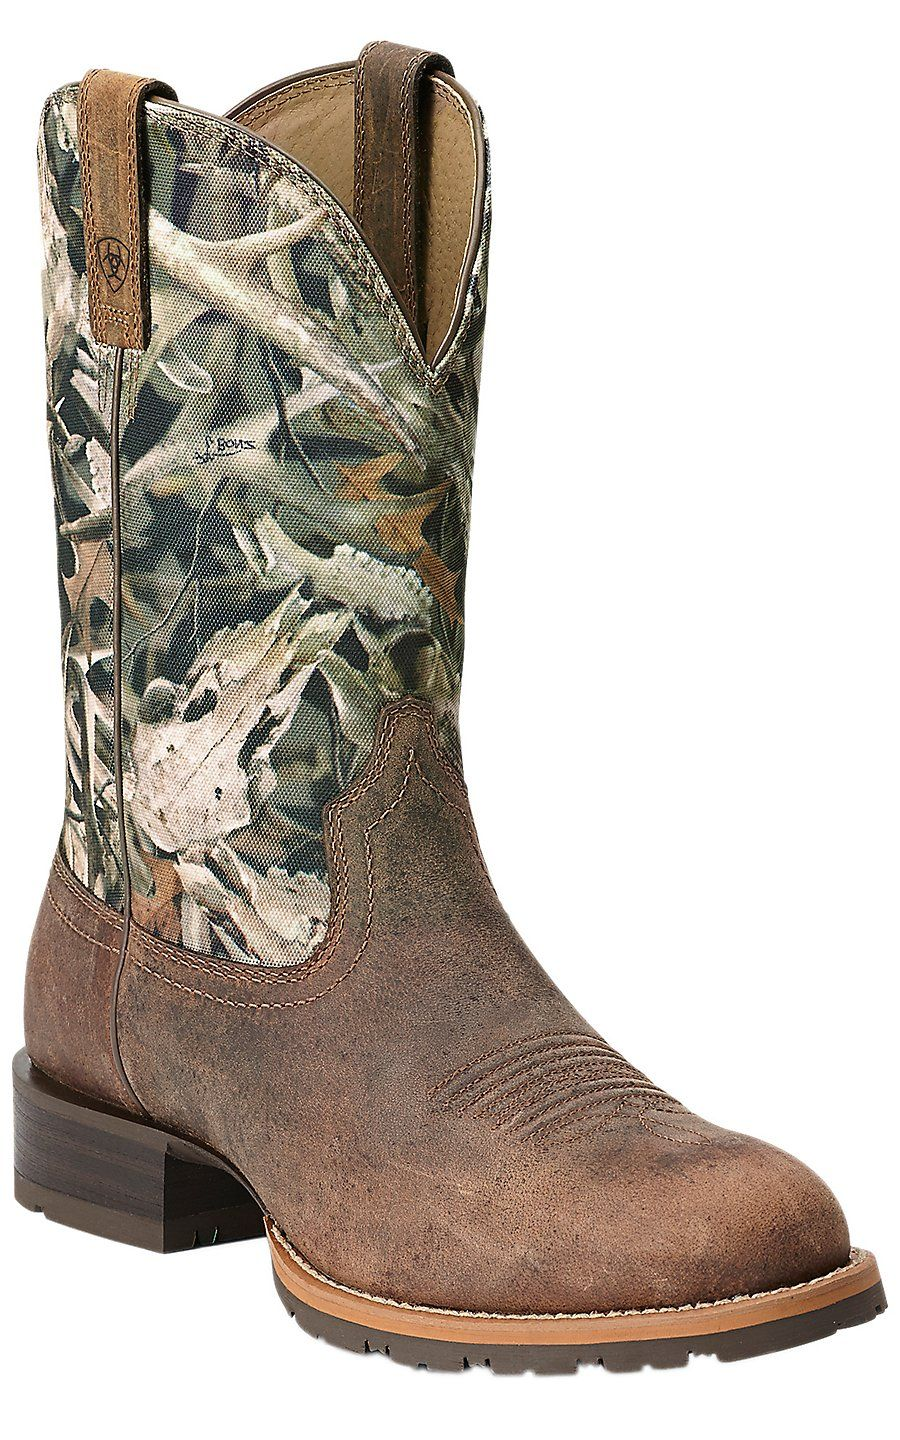 228be18429c Ariat Hybrid Rancher Men's Distressed Brown with Bonz Camo Top Round ...